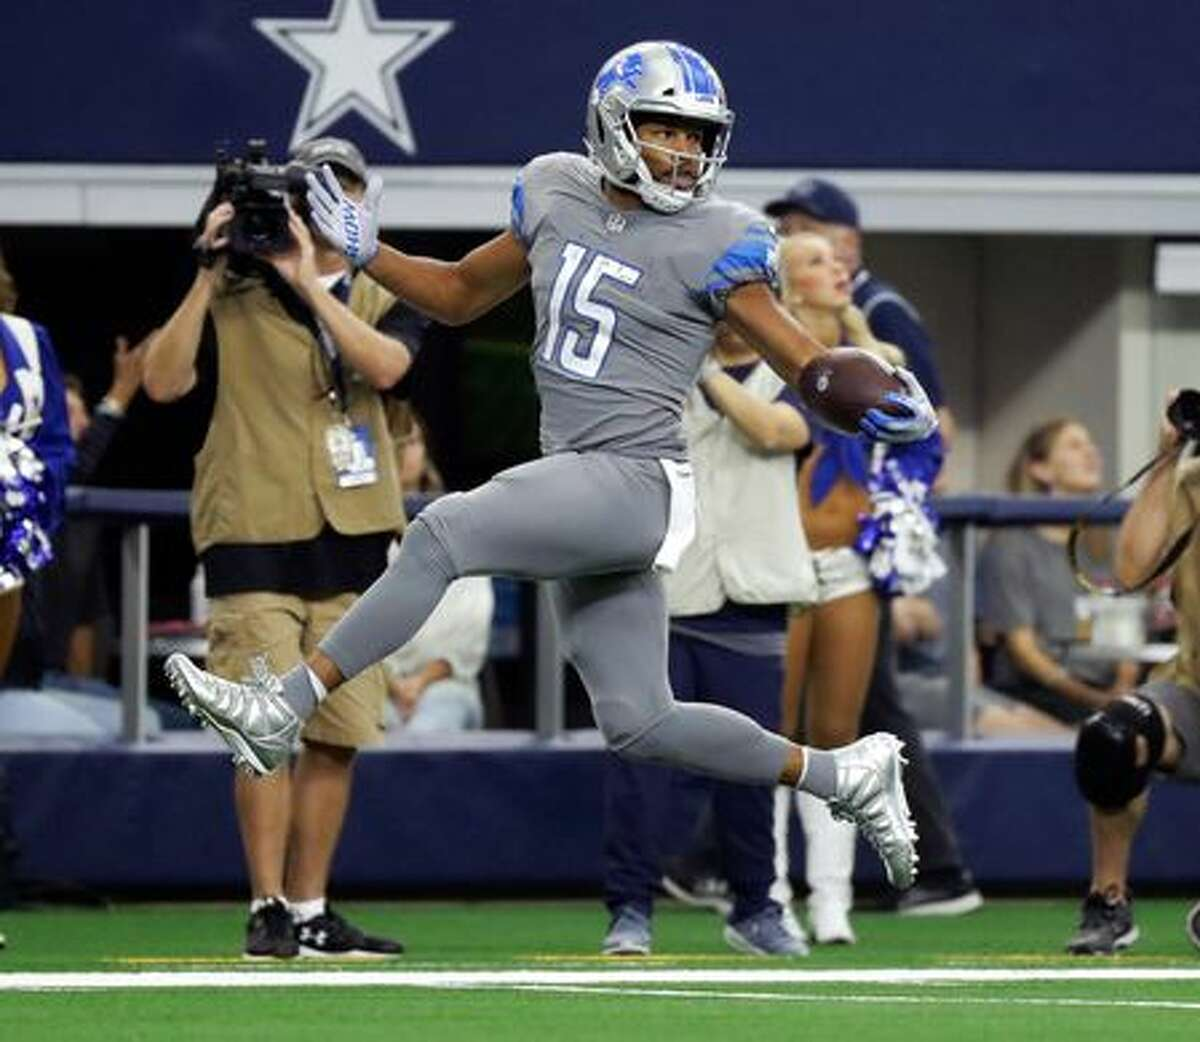 Lions wide receiver Golden Tate looks over his shoulder on a touchdown run on a pass from Matthew Stafford in the first half in Arlington, Texas, Sunday, Sept. 30, 2018. Eric Gay, AP